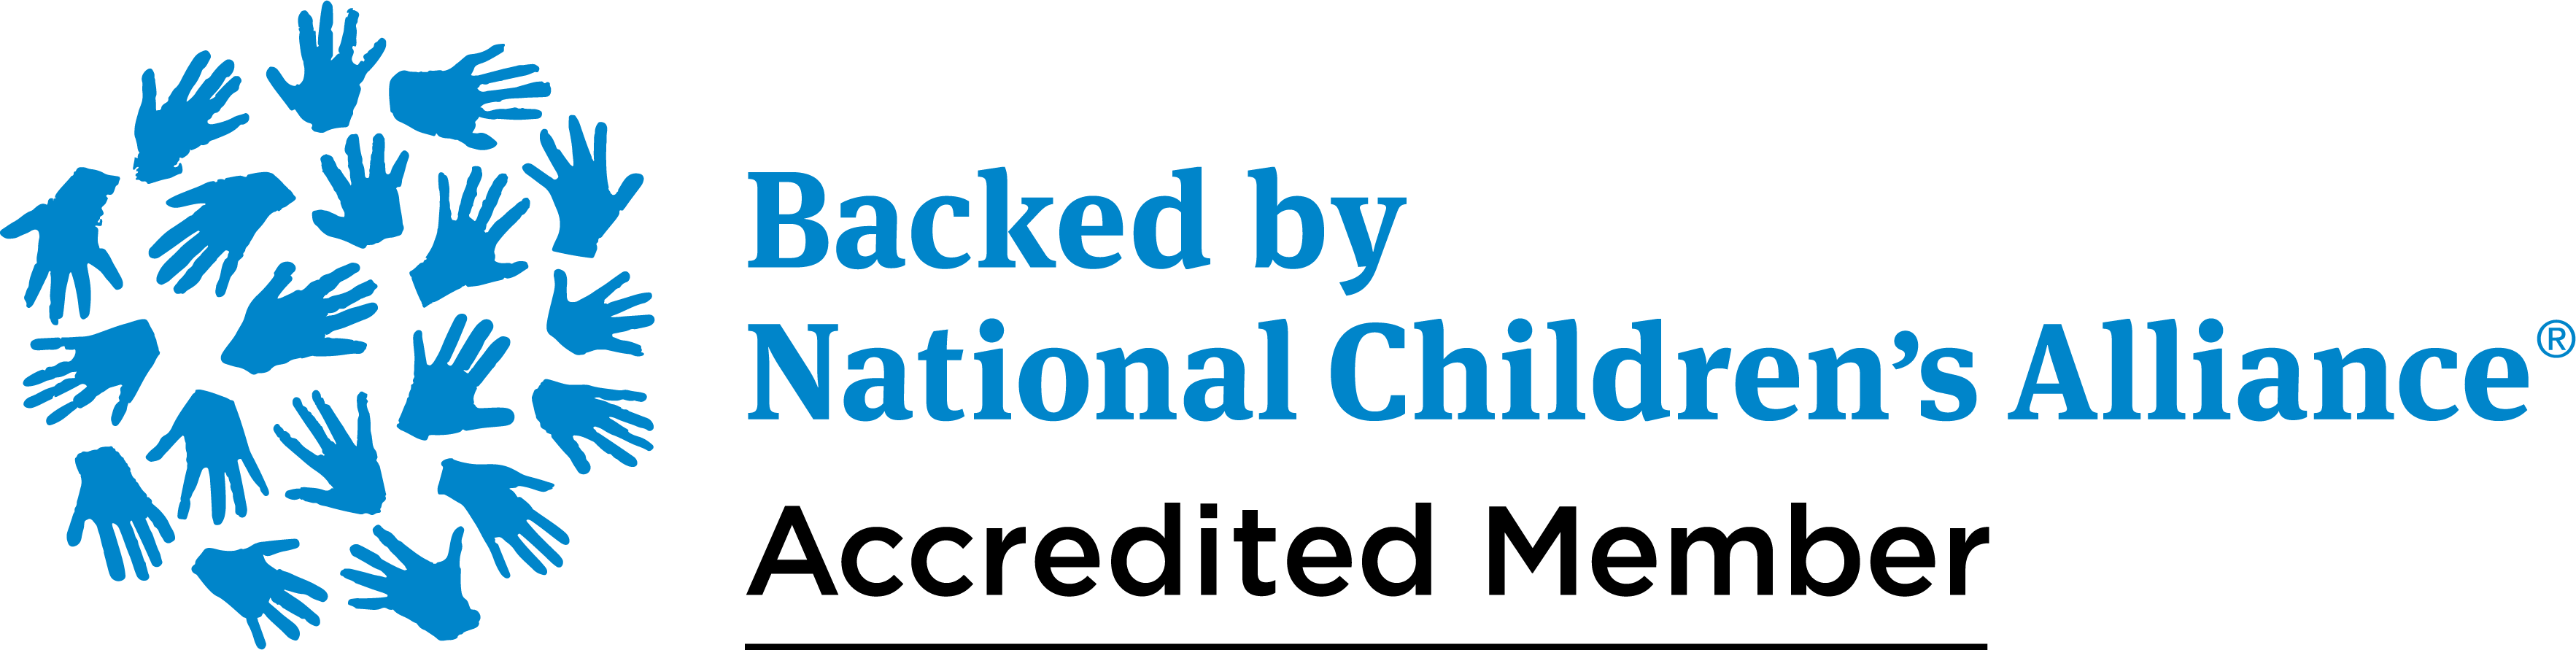 NCA ensures that all children across the U.S. served by CACs receive consistent, evidence-based services that help them heal from abuse.